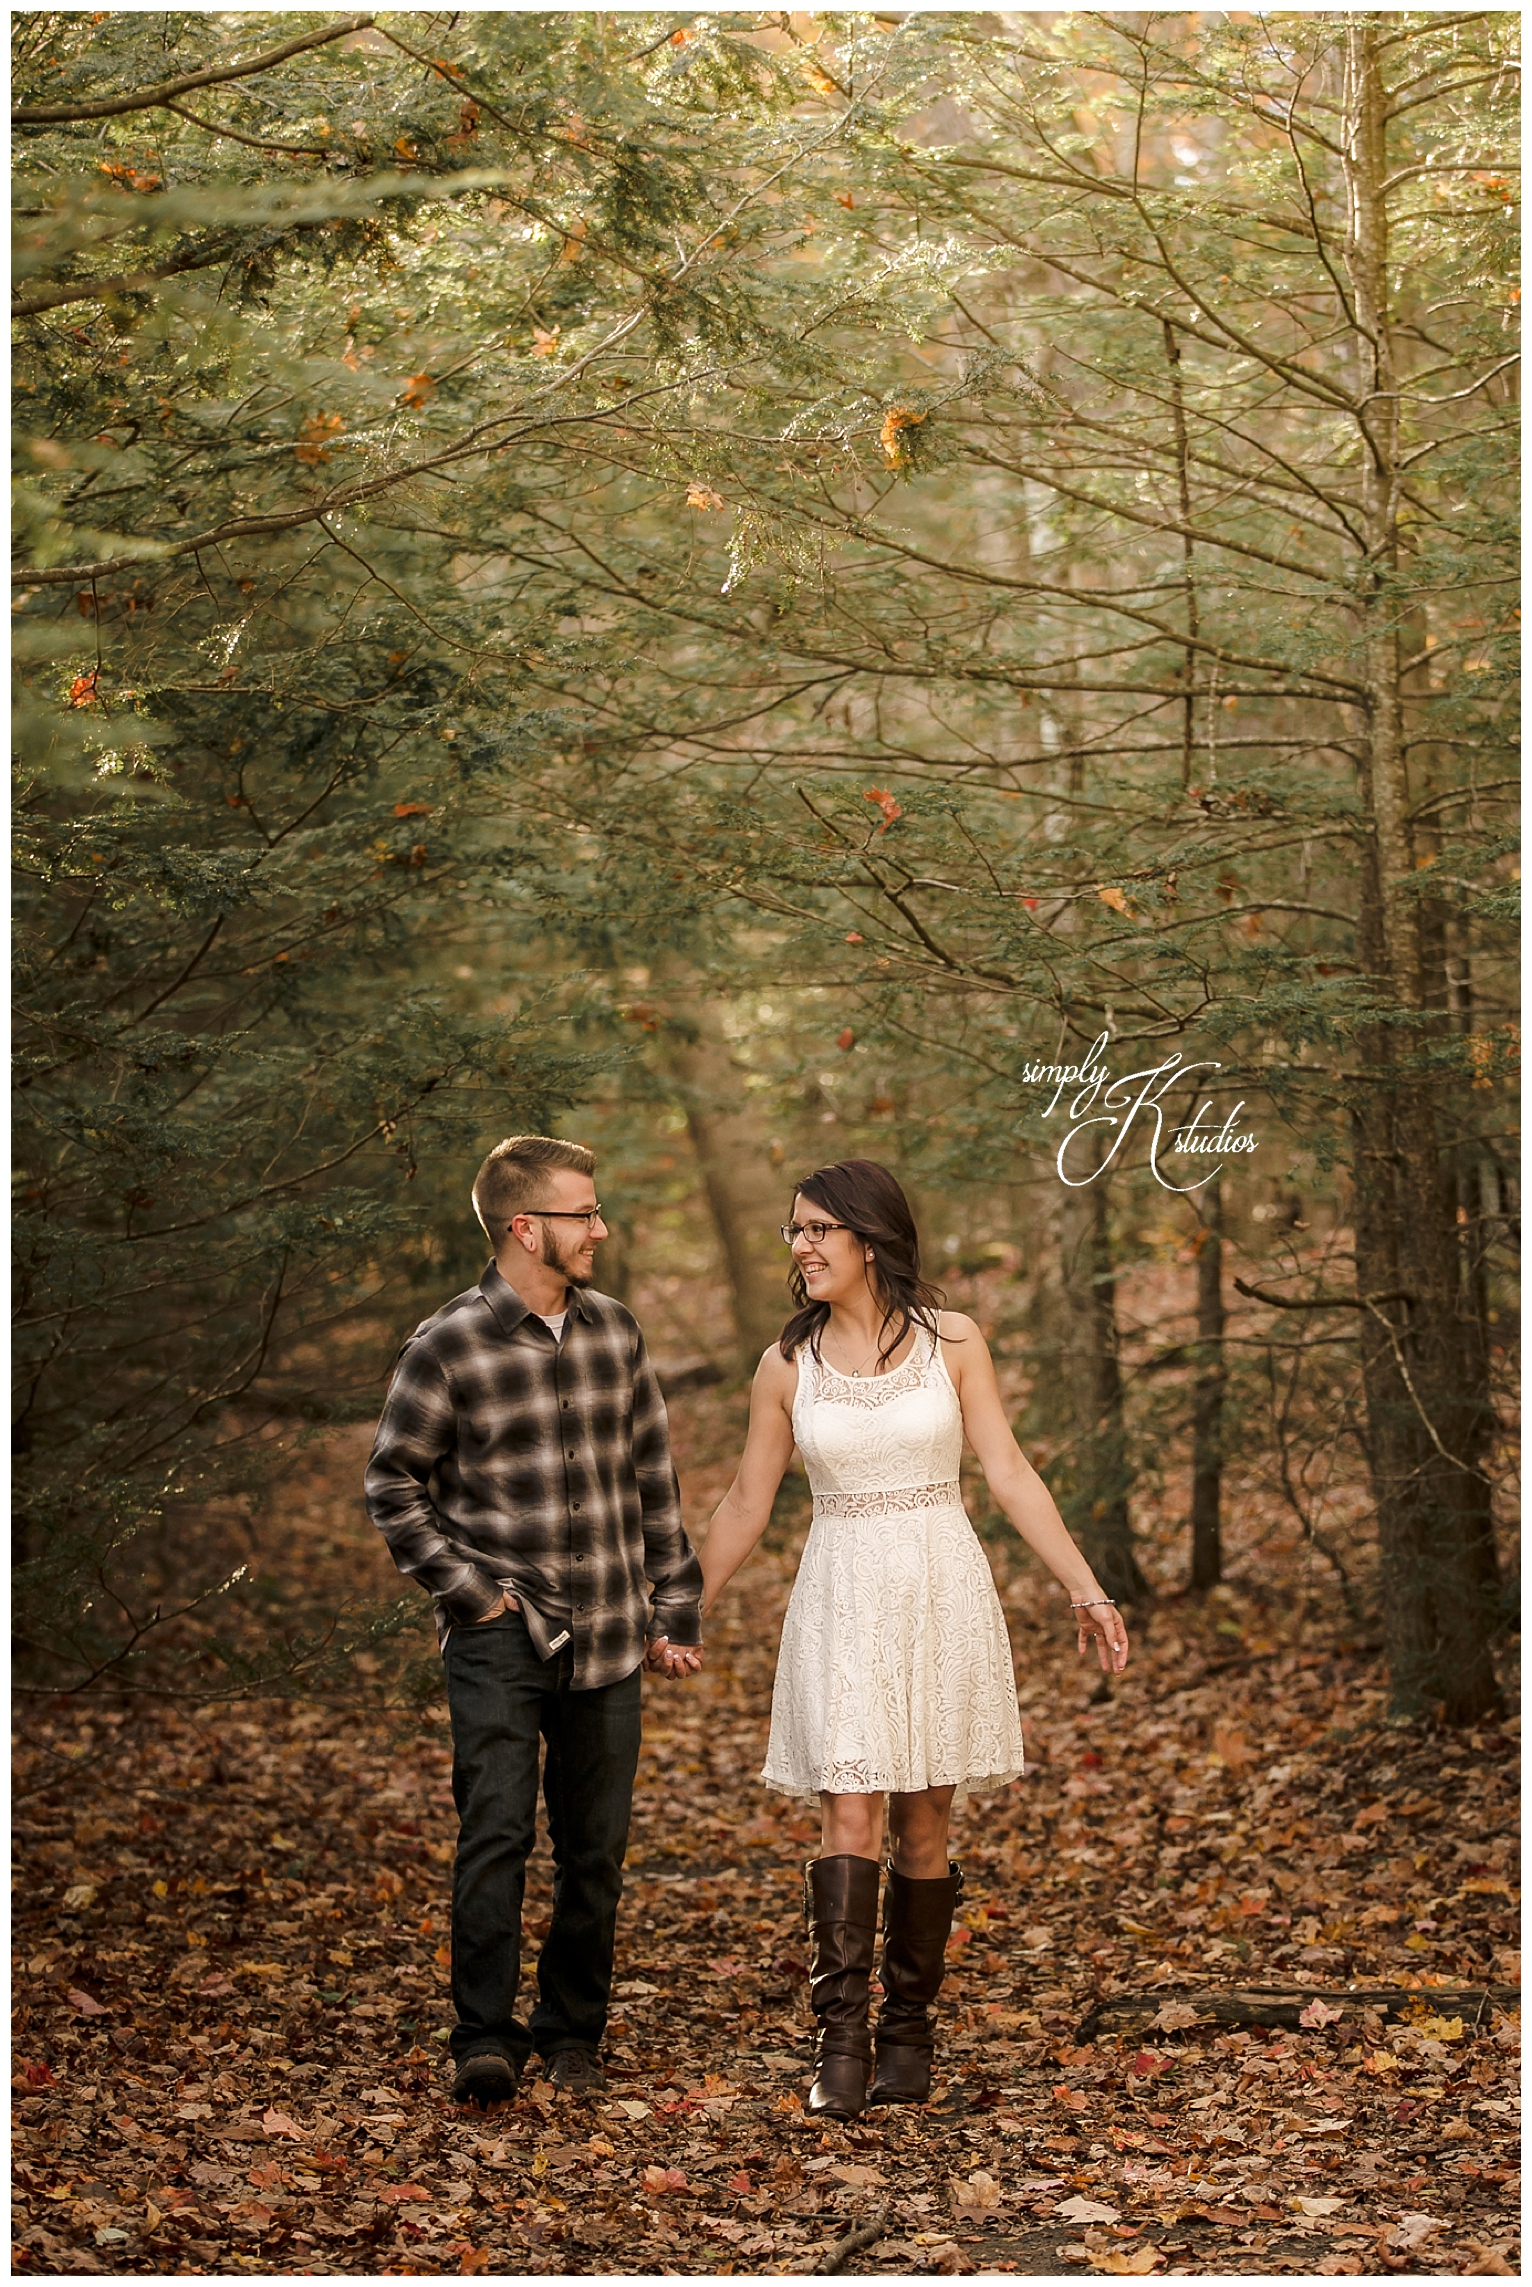 Outdoors Engagement Sessions in Connecticut.jpg